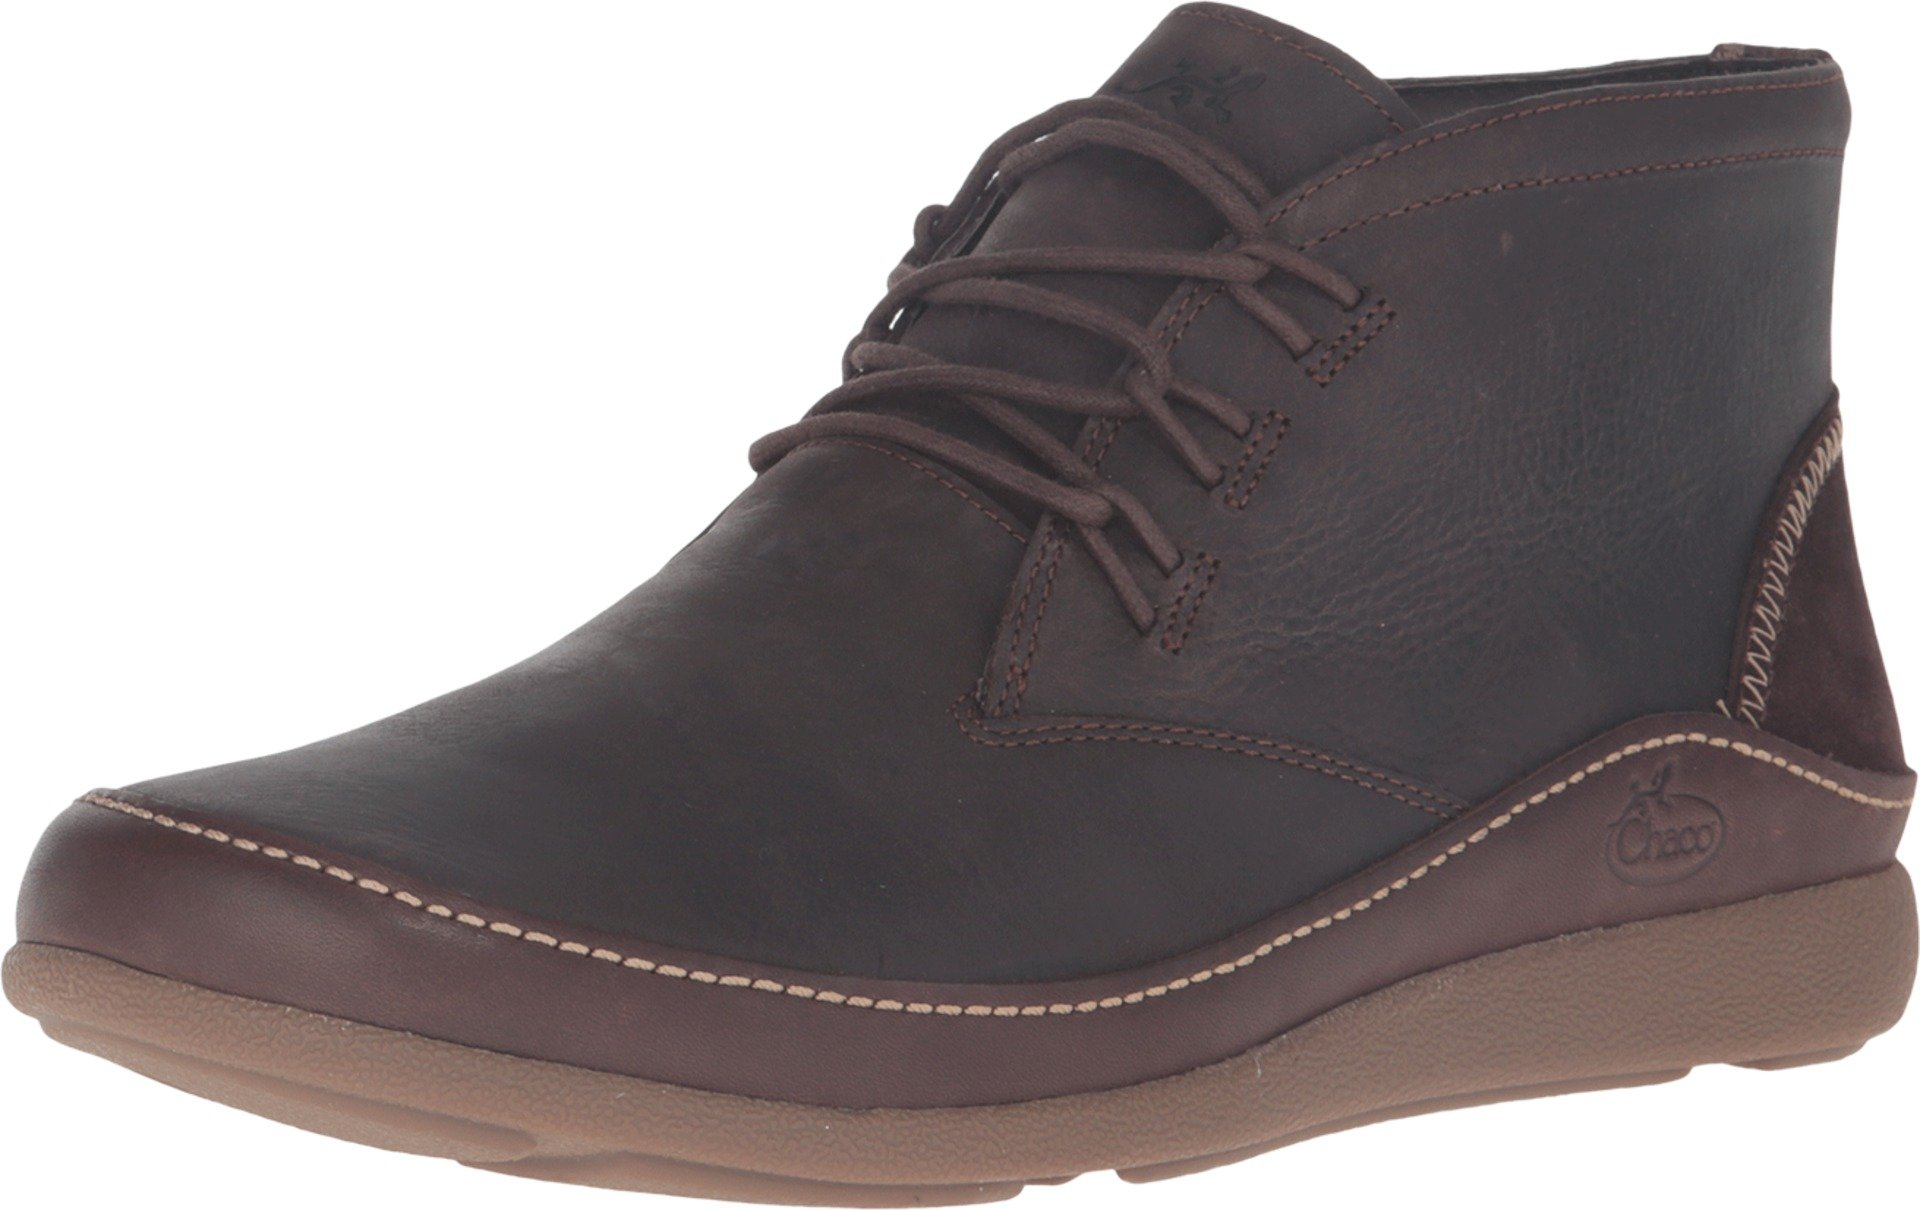 Chaco Men's Montrose Chukka-M Boot, Java, 9.5 M US by Chaco (Image #1)